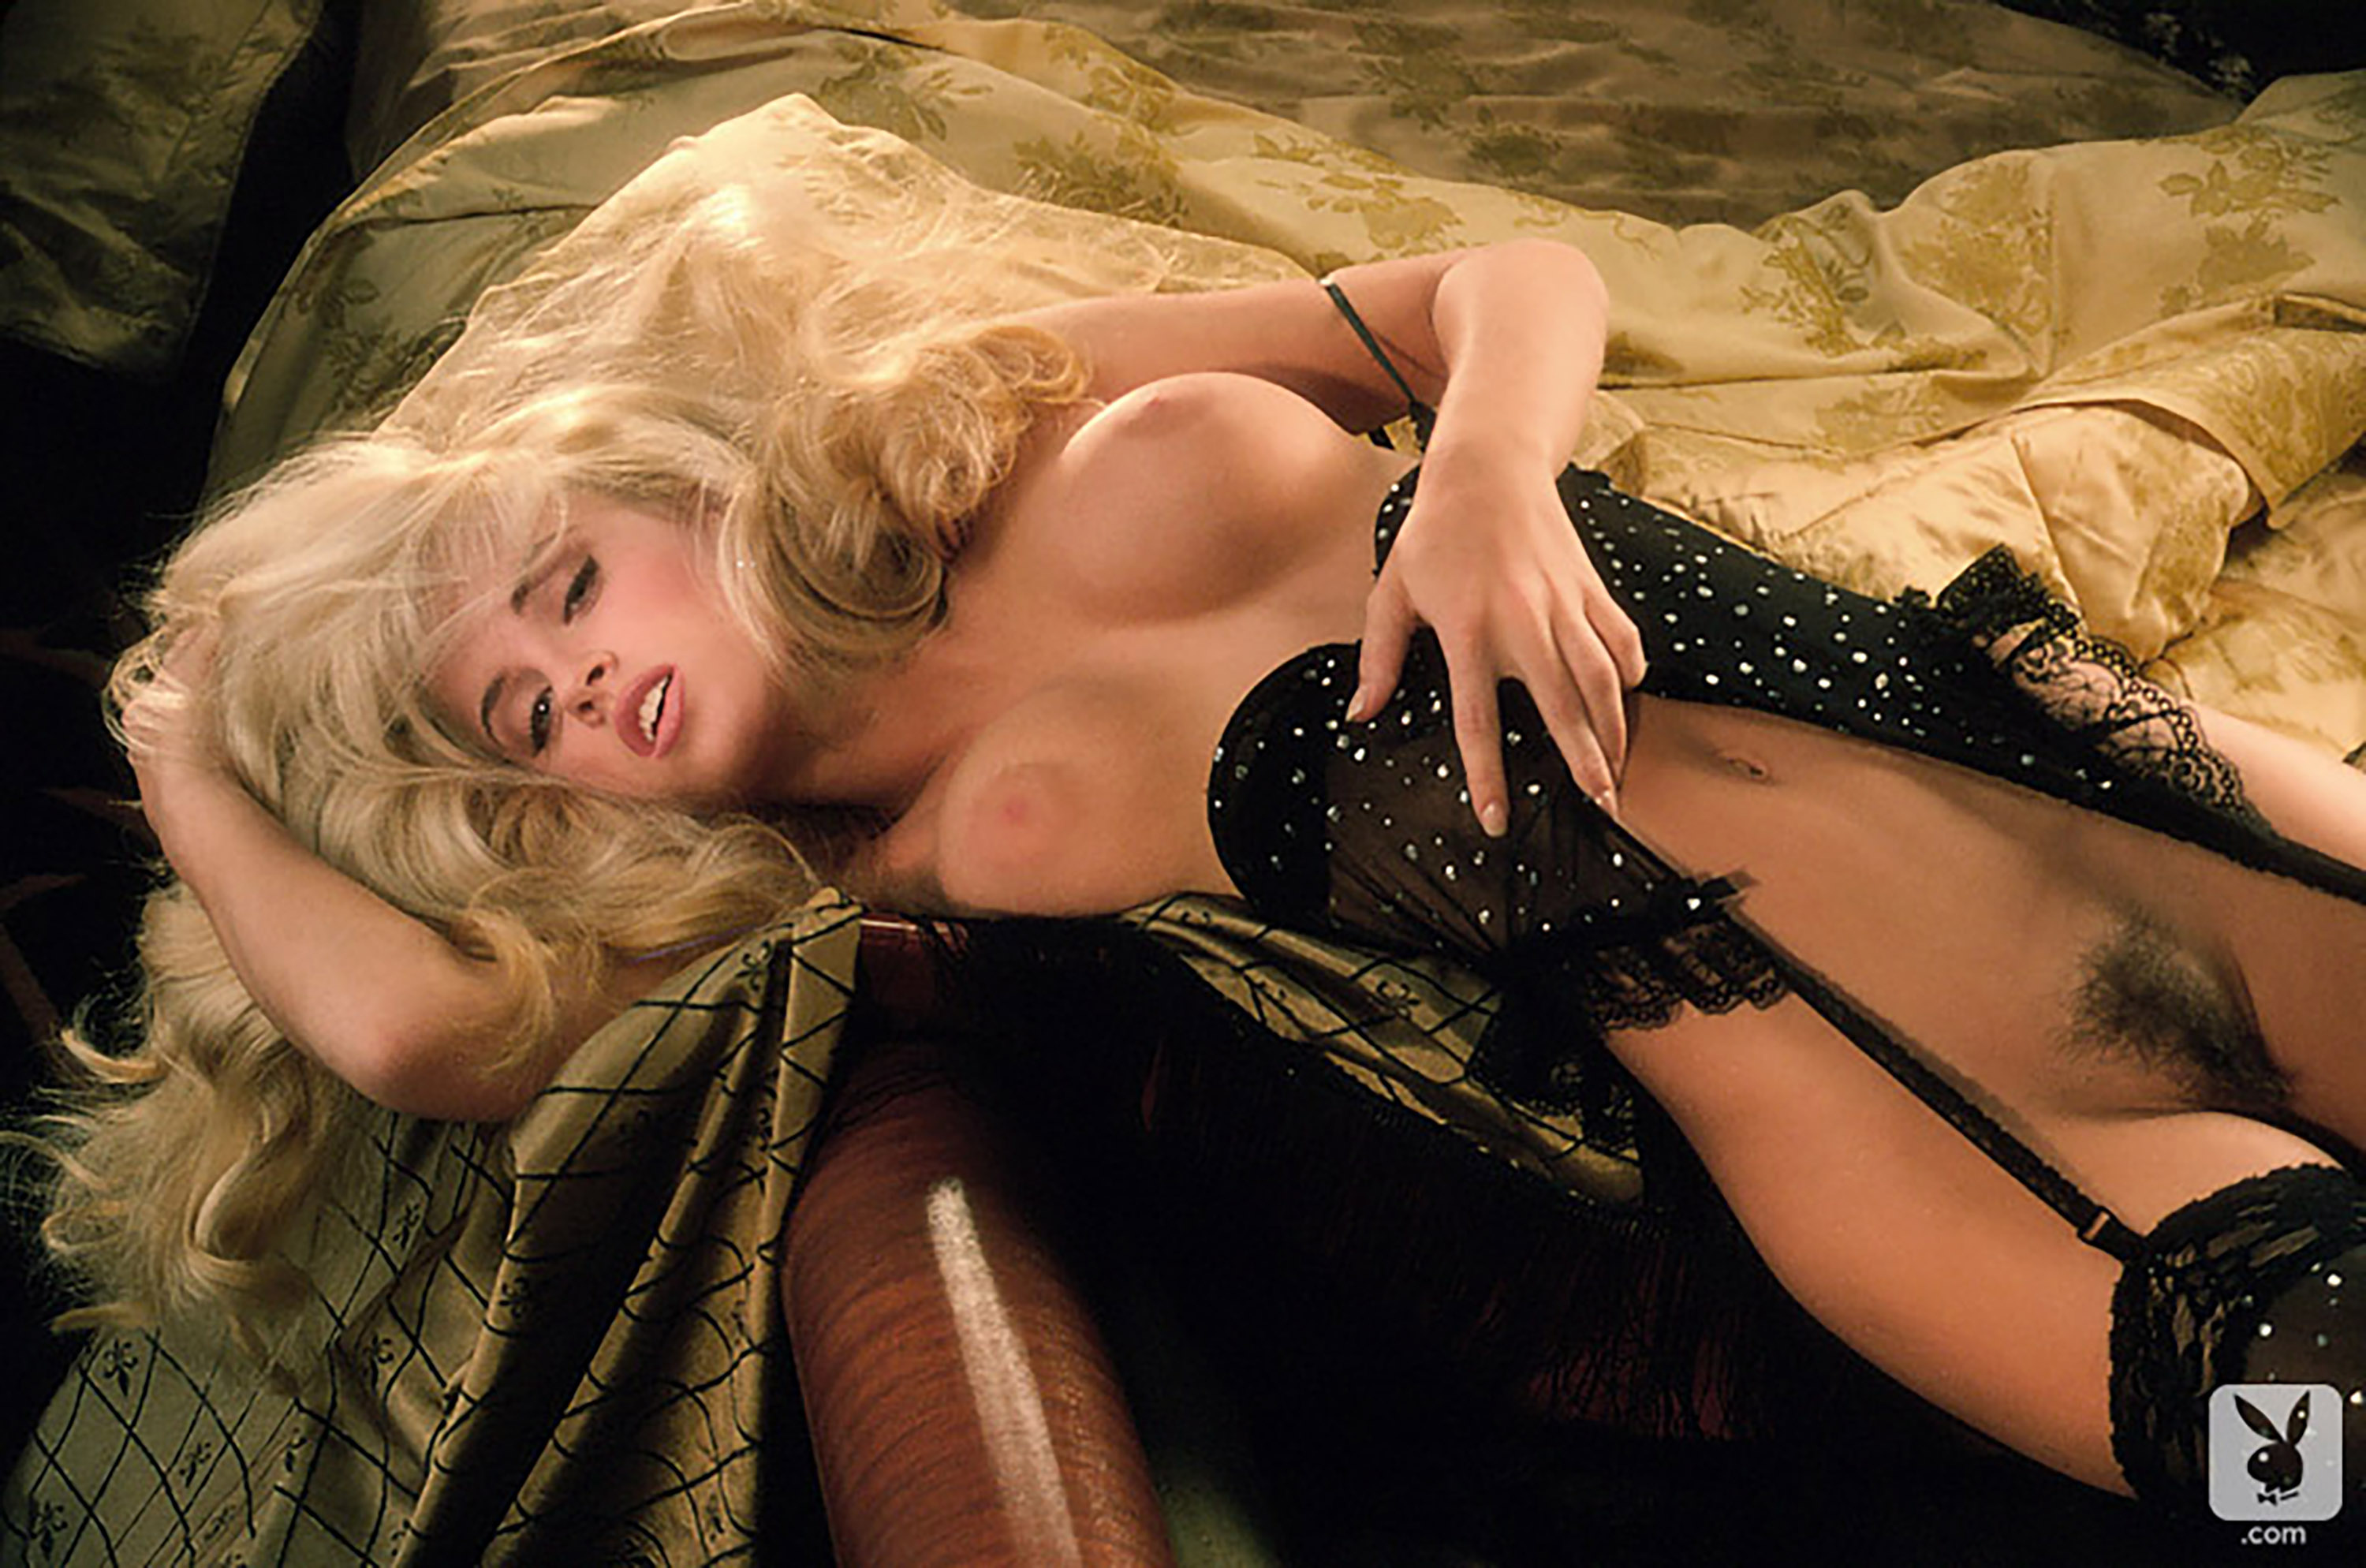 Jenny Mccarthy Porn Video wallpaper jenny mccarthy, playboy, blonde, stockings, blonde